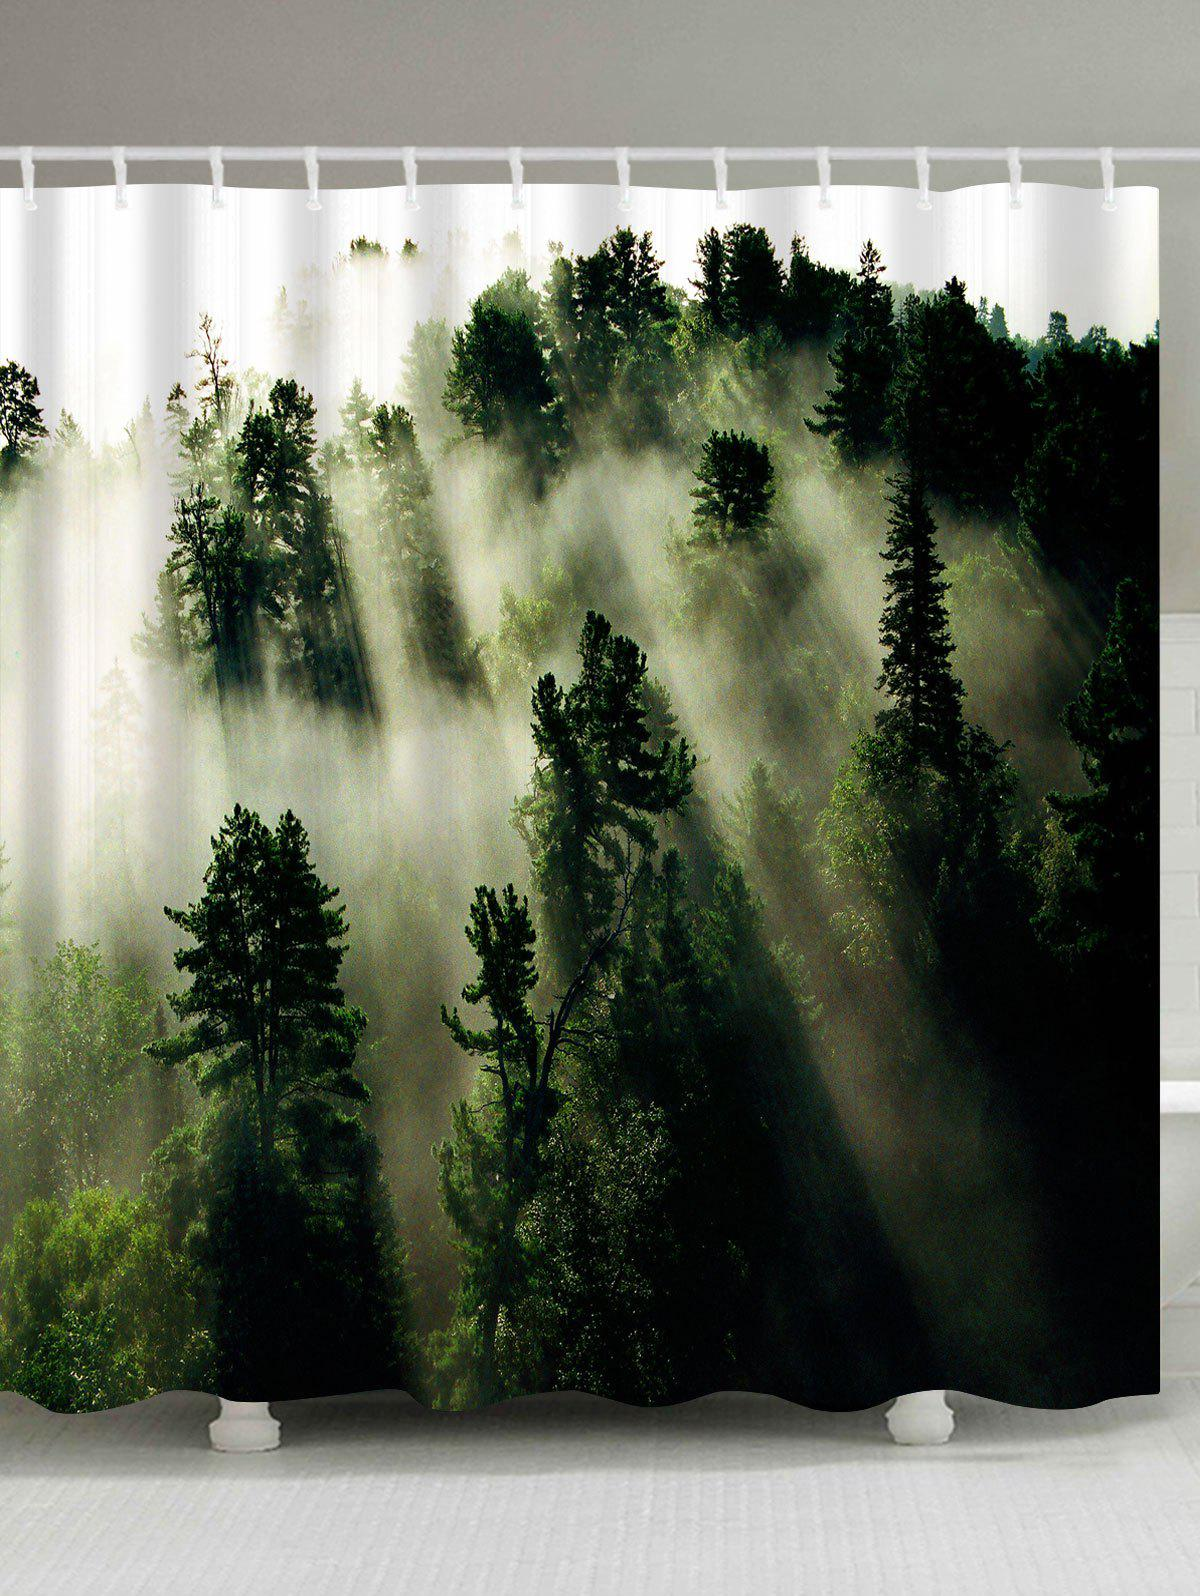 Forest Trees Fog Print Fabric Bathroom Shower Curtain - GREEN W71 INCH * L79 INCH